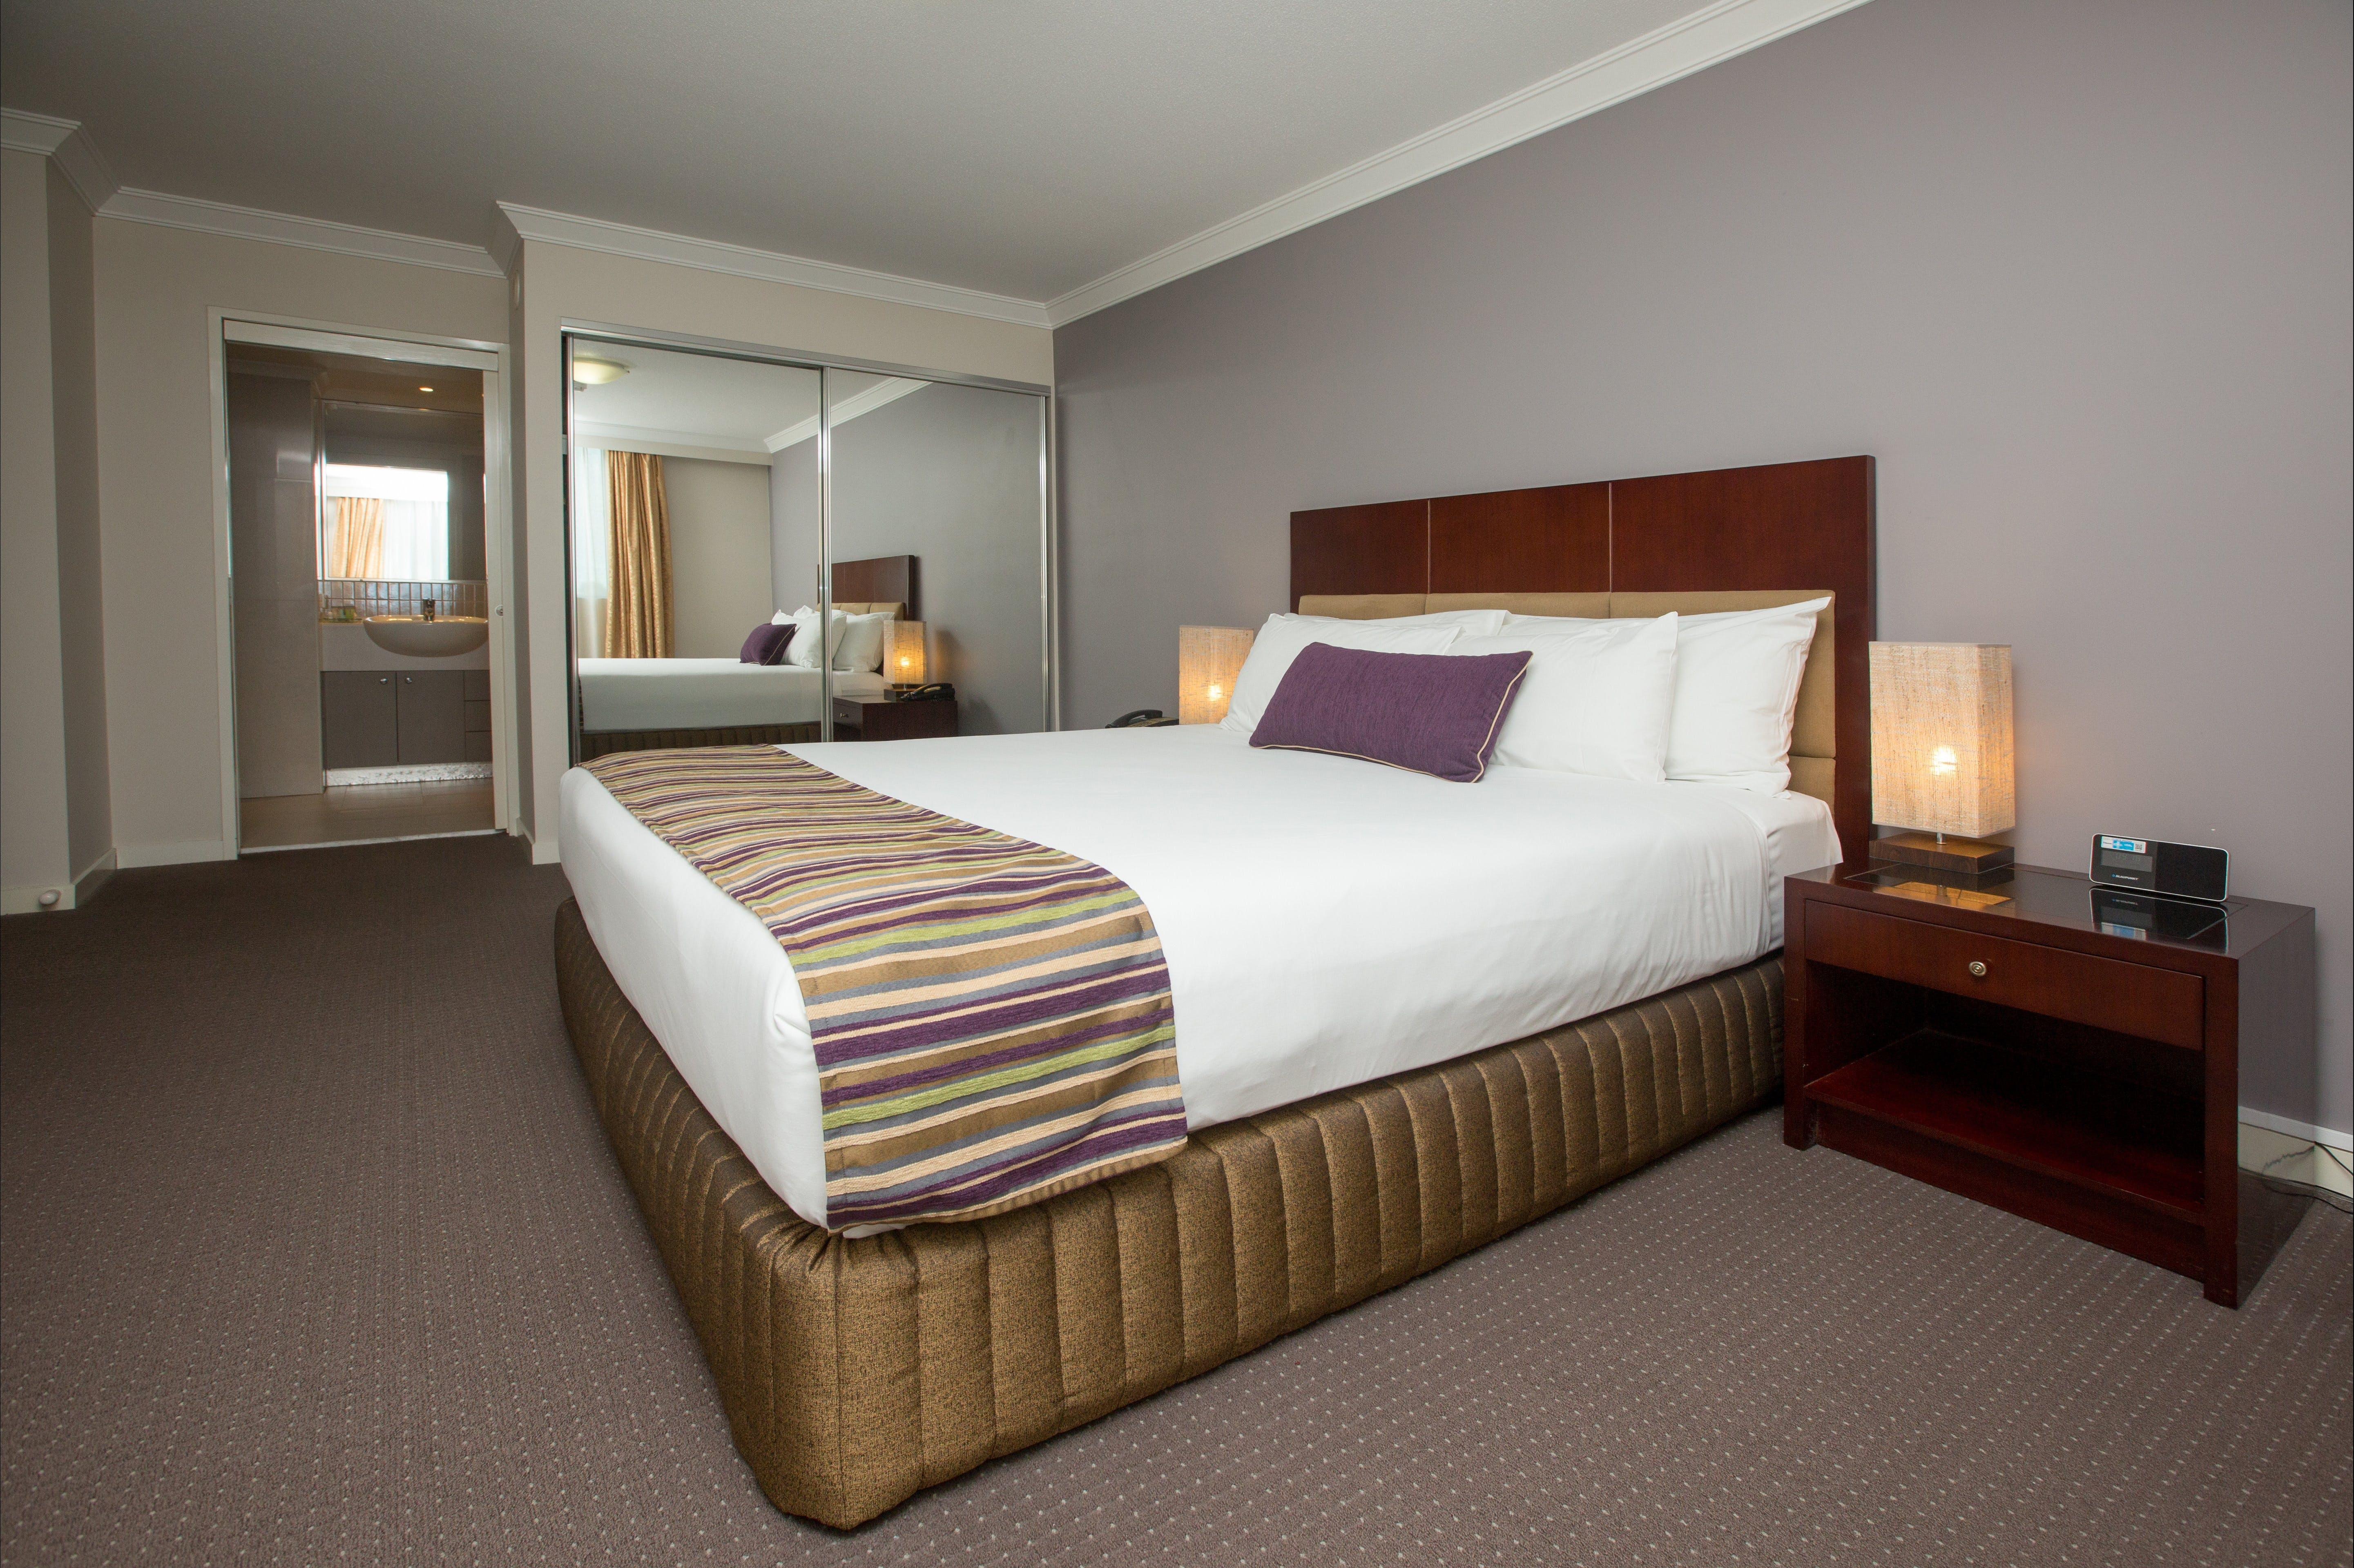 Hotel Gloria - Accommodation in Surfers Paradise